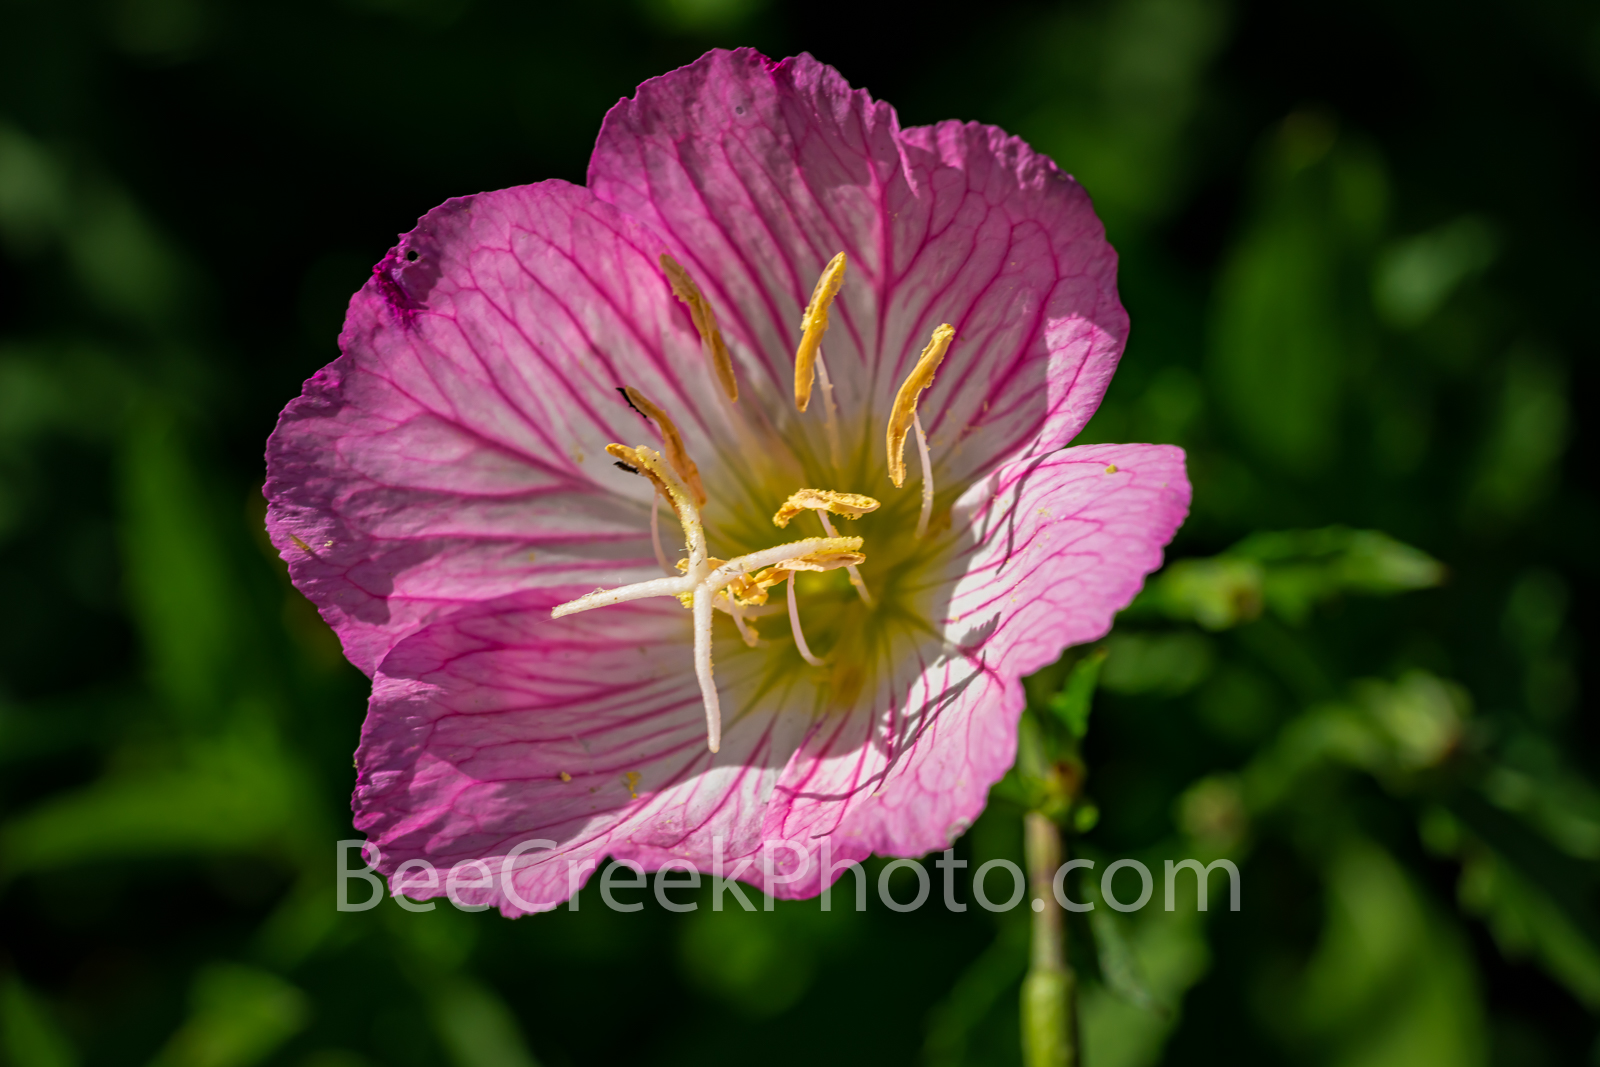 Texas Primrose Wildflower - We captured this primrose as a macro so we could see the details of the wonderful pink flower with...